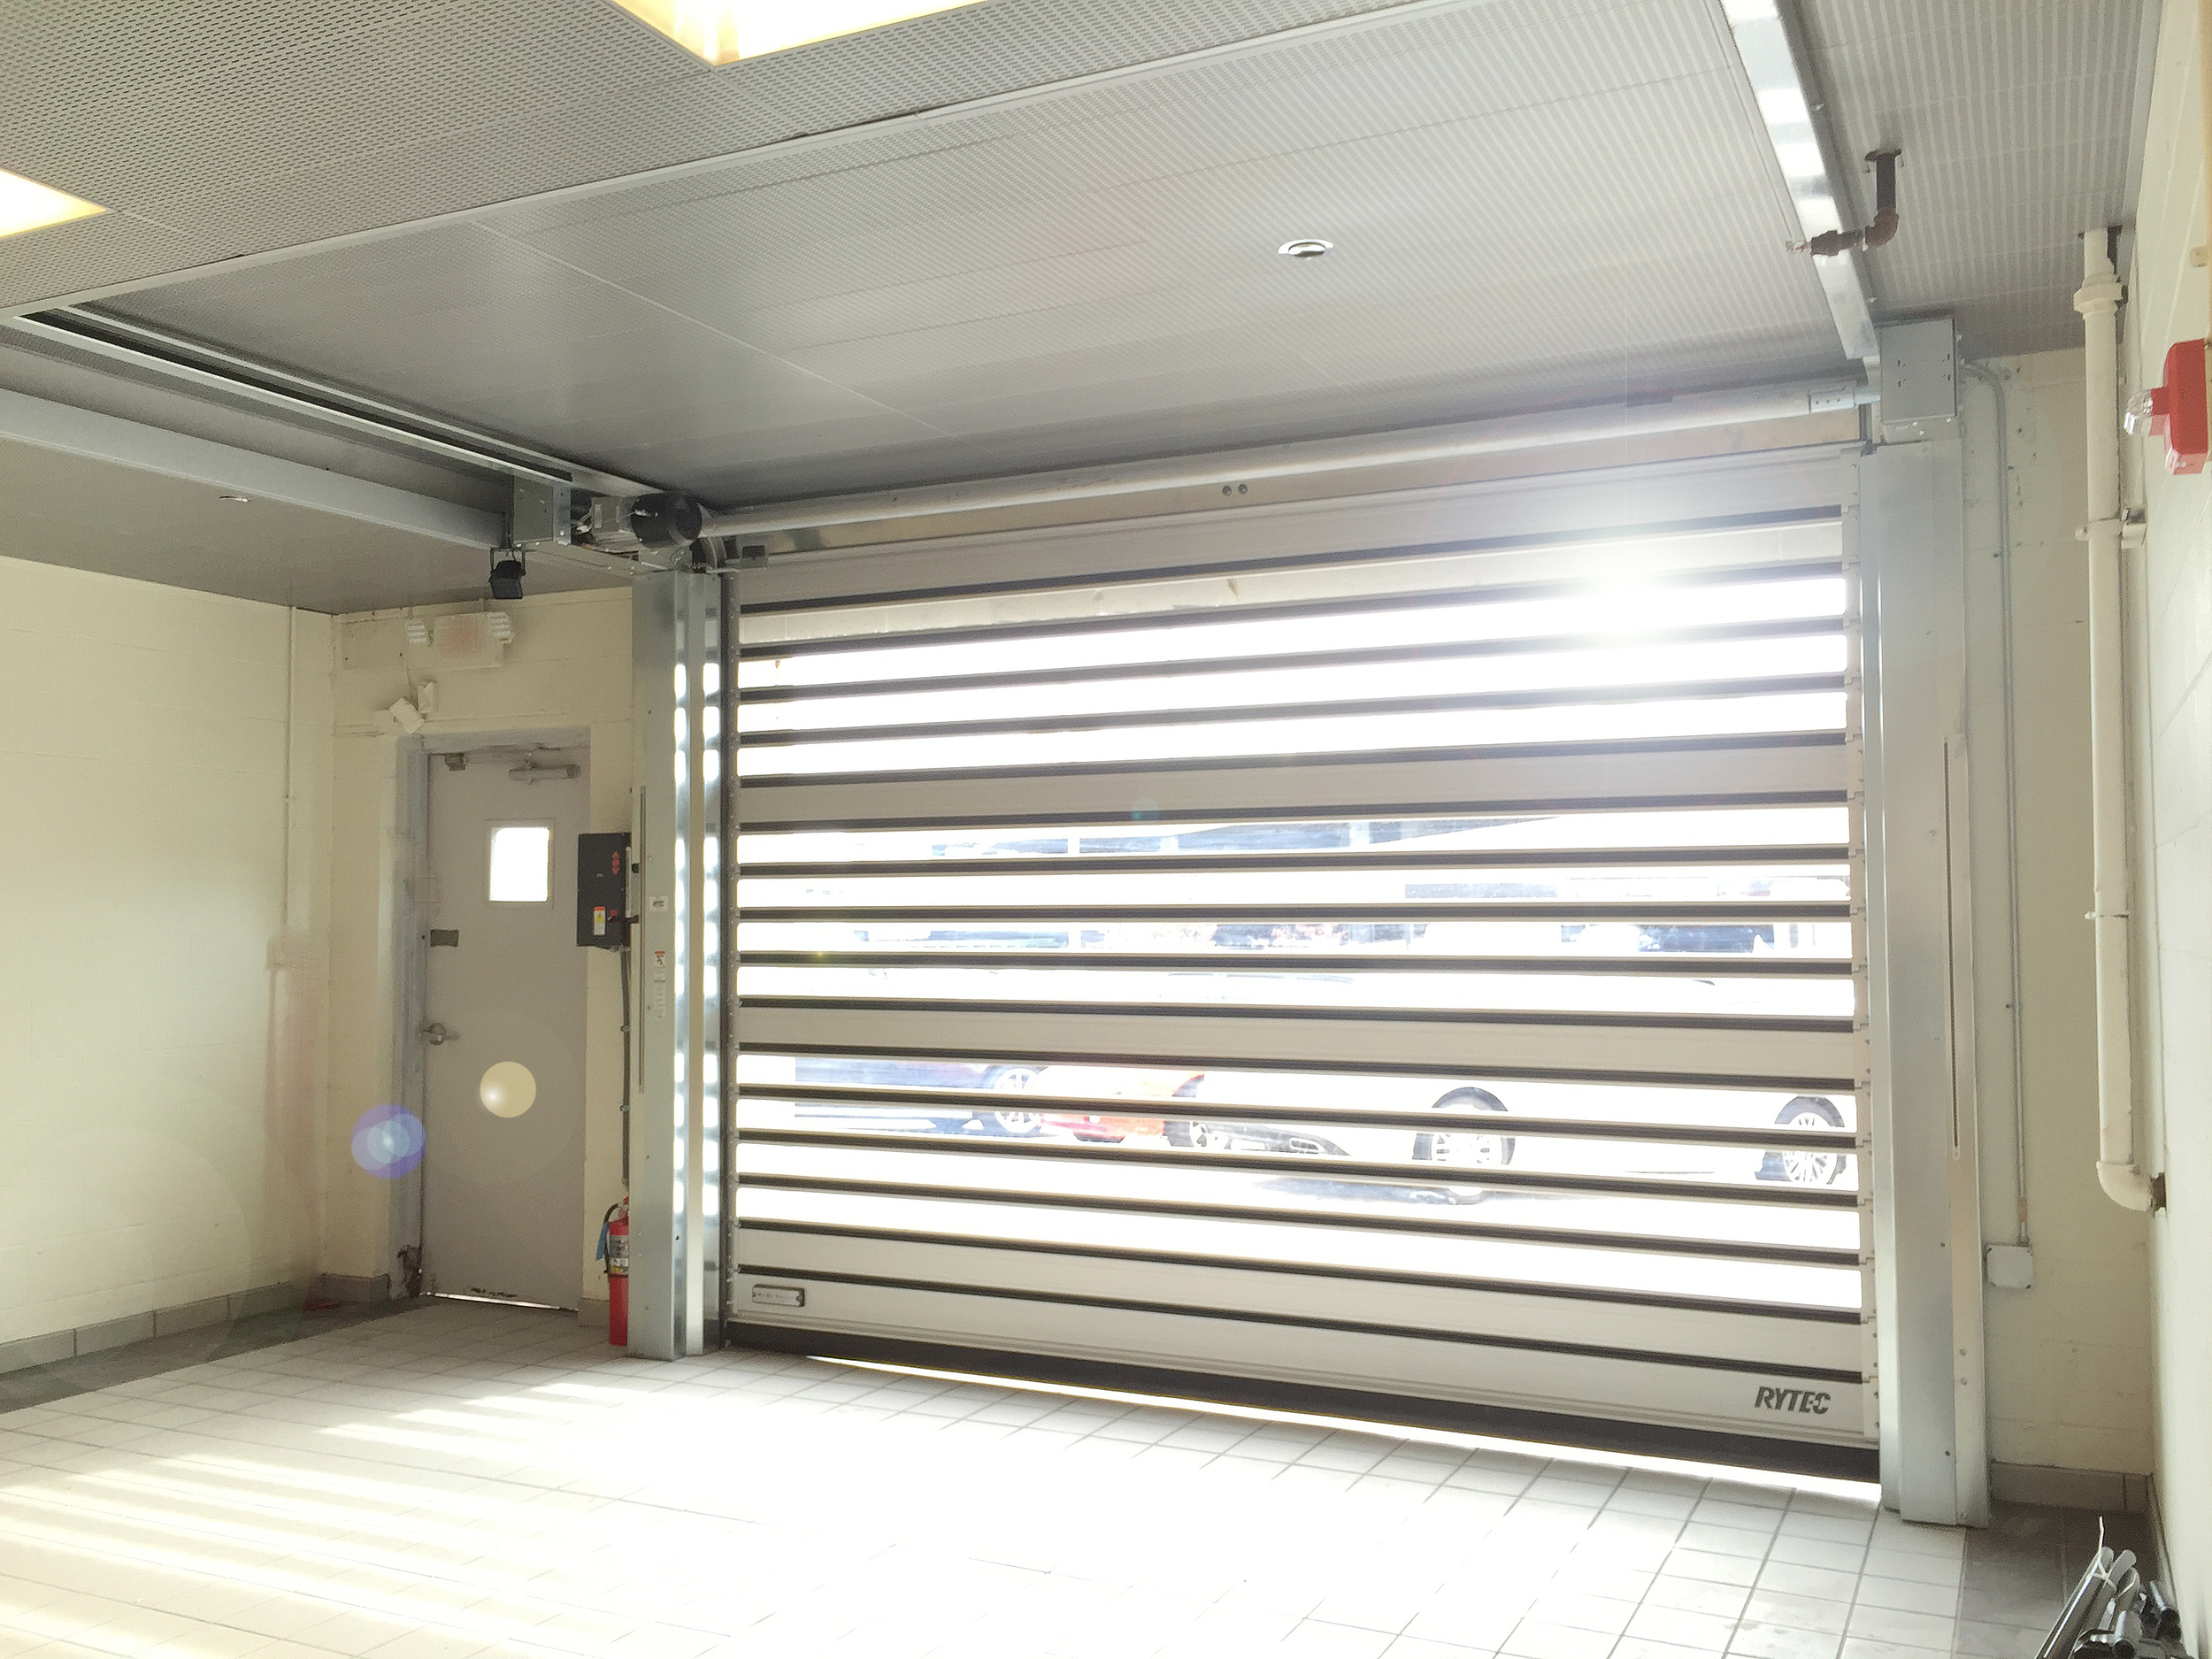 Rytec LH (Low Headroom) High Speed Door. If you've got SUPER TIGHT clearance requirements (see above image), we've got a door for your application.